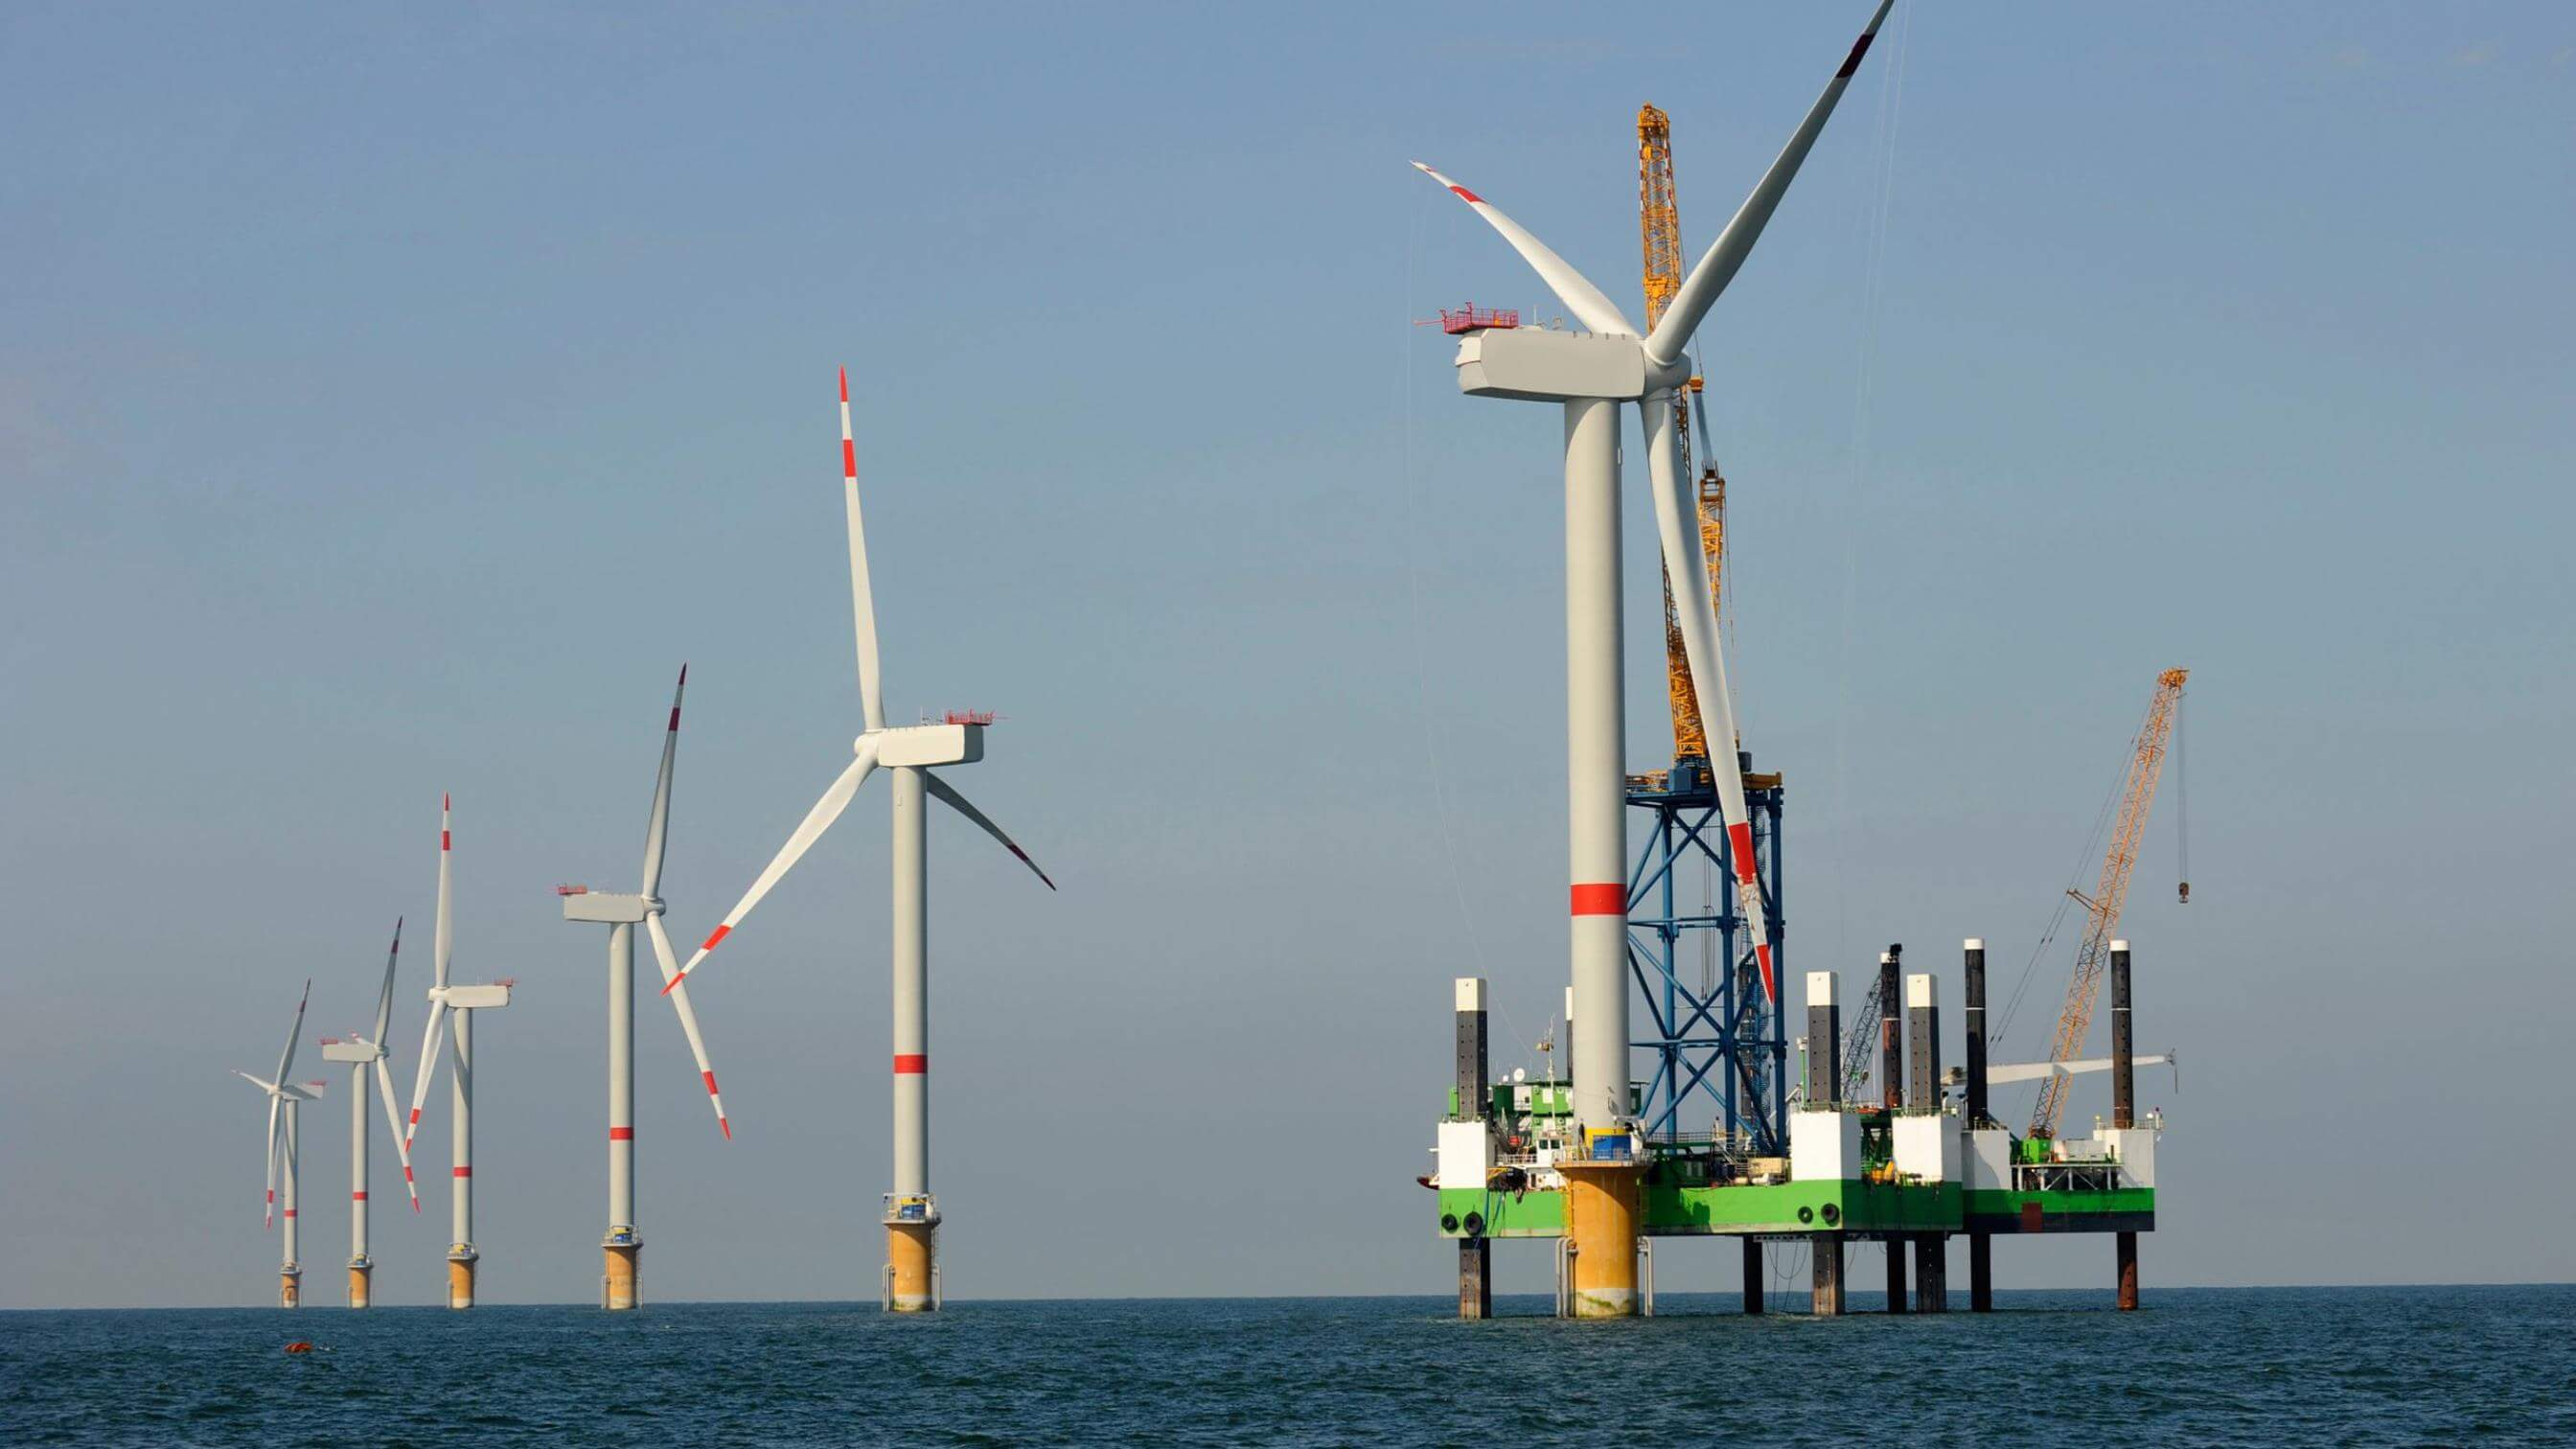 Commissioning of offshore wind farm at sea